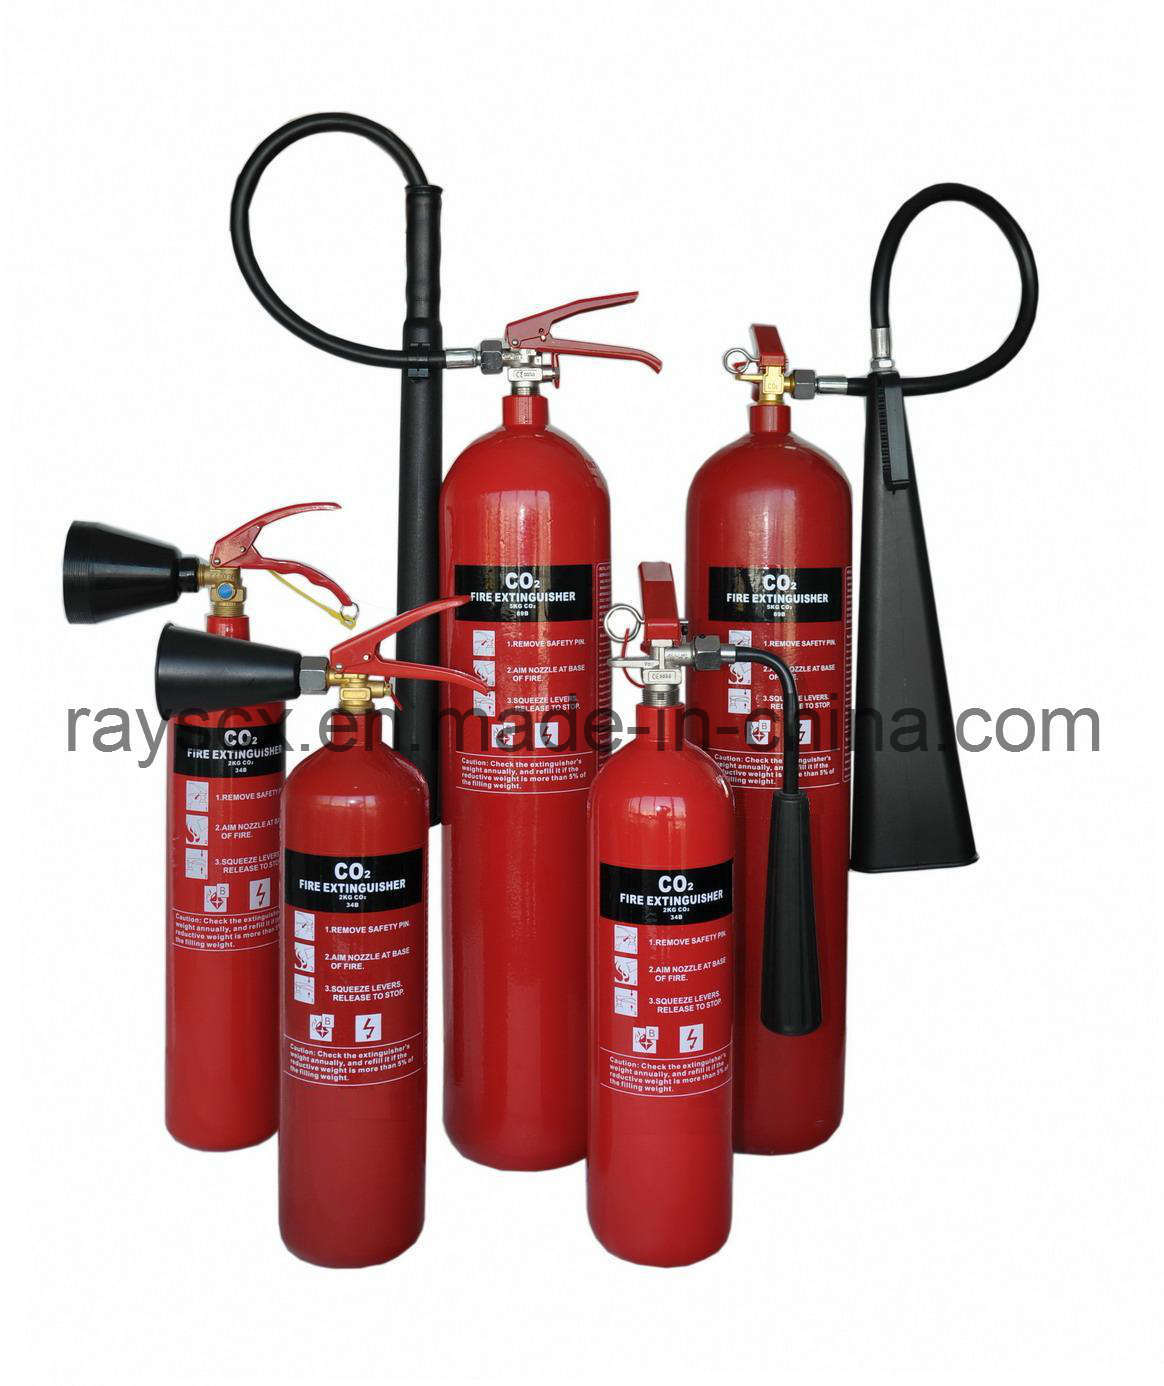 CO2 Fire Extinguisher From Synergy Industry